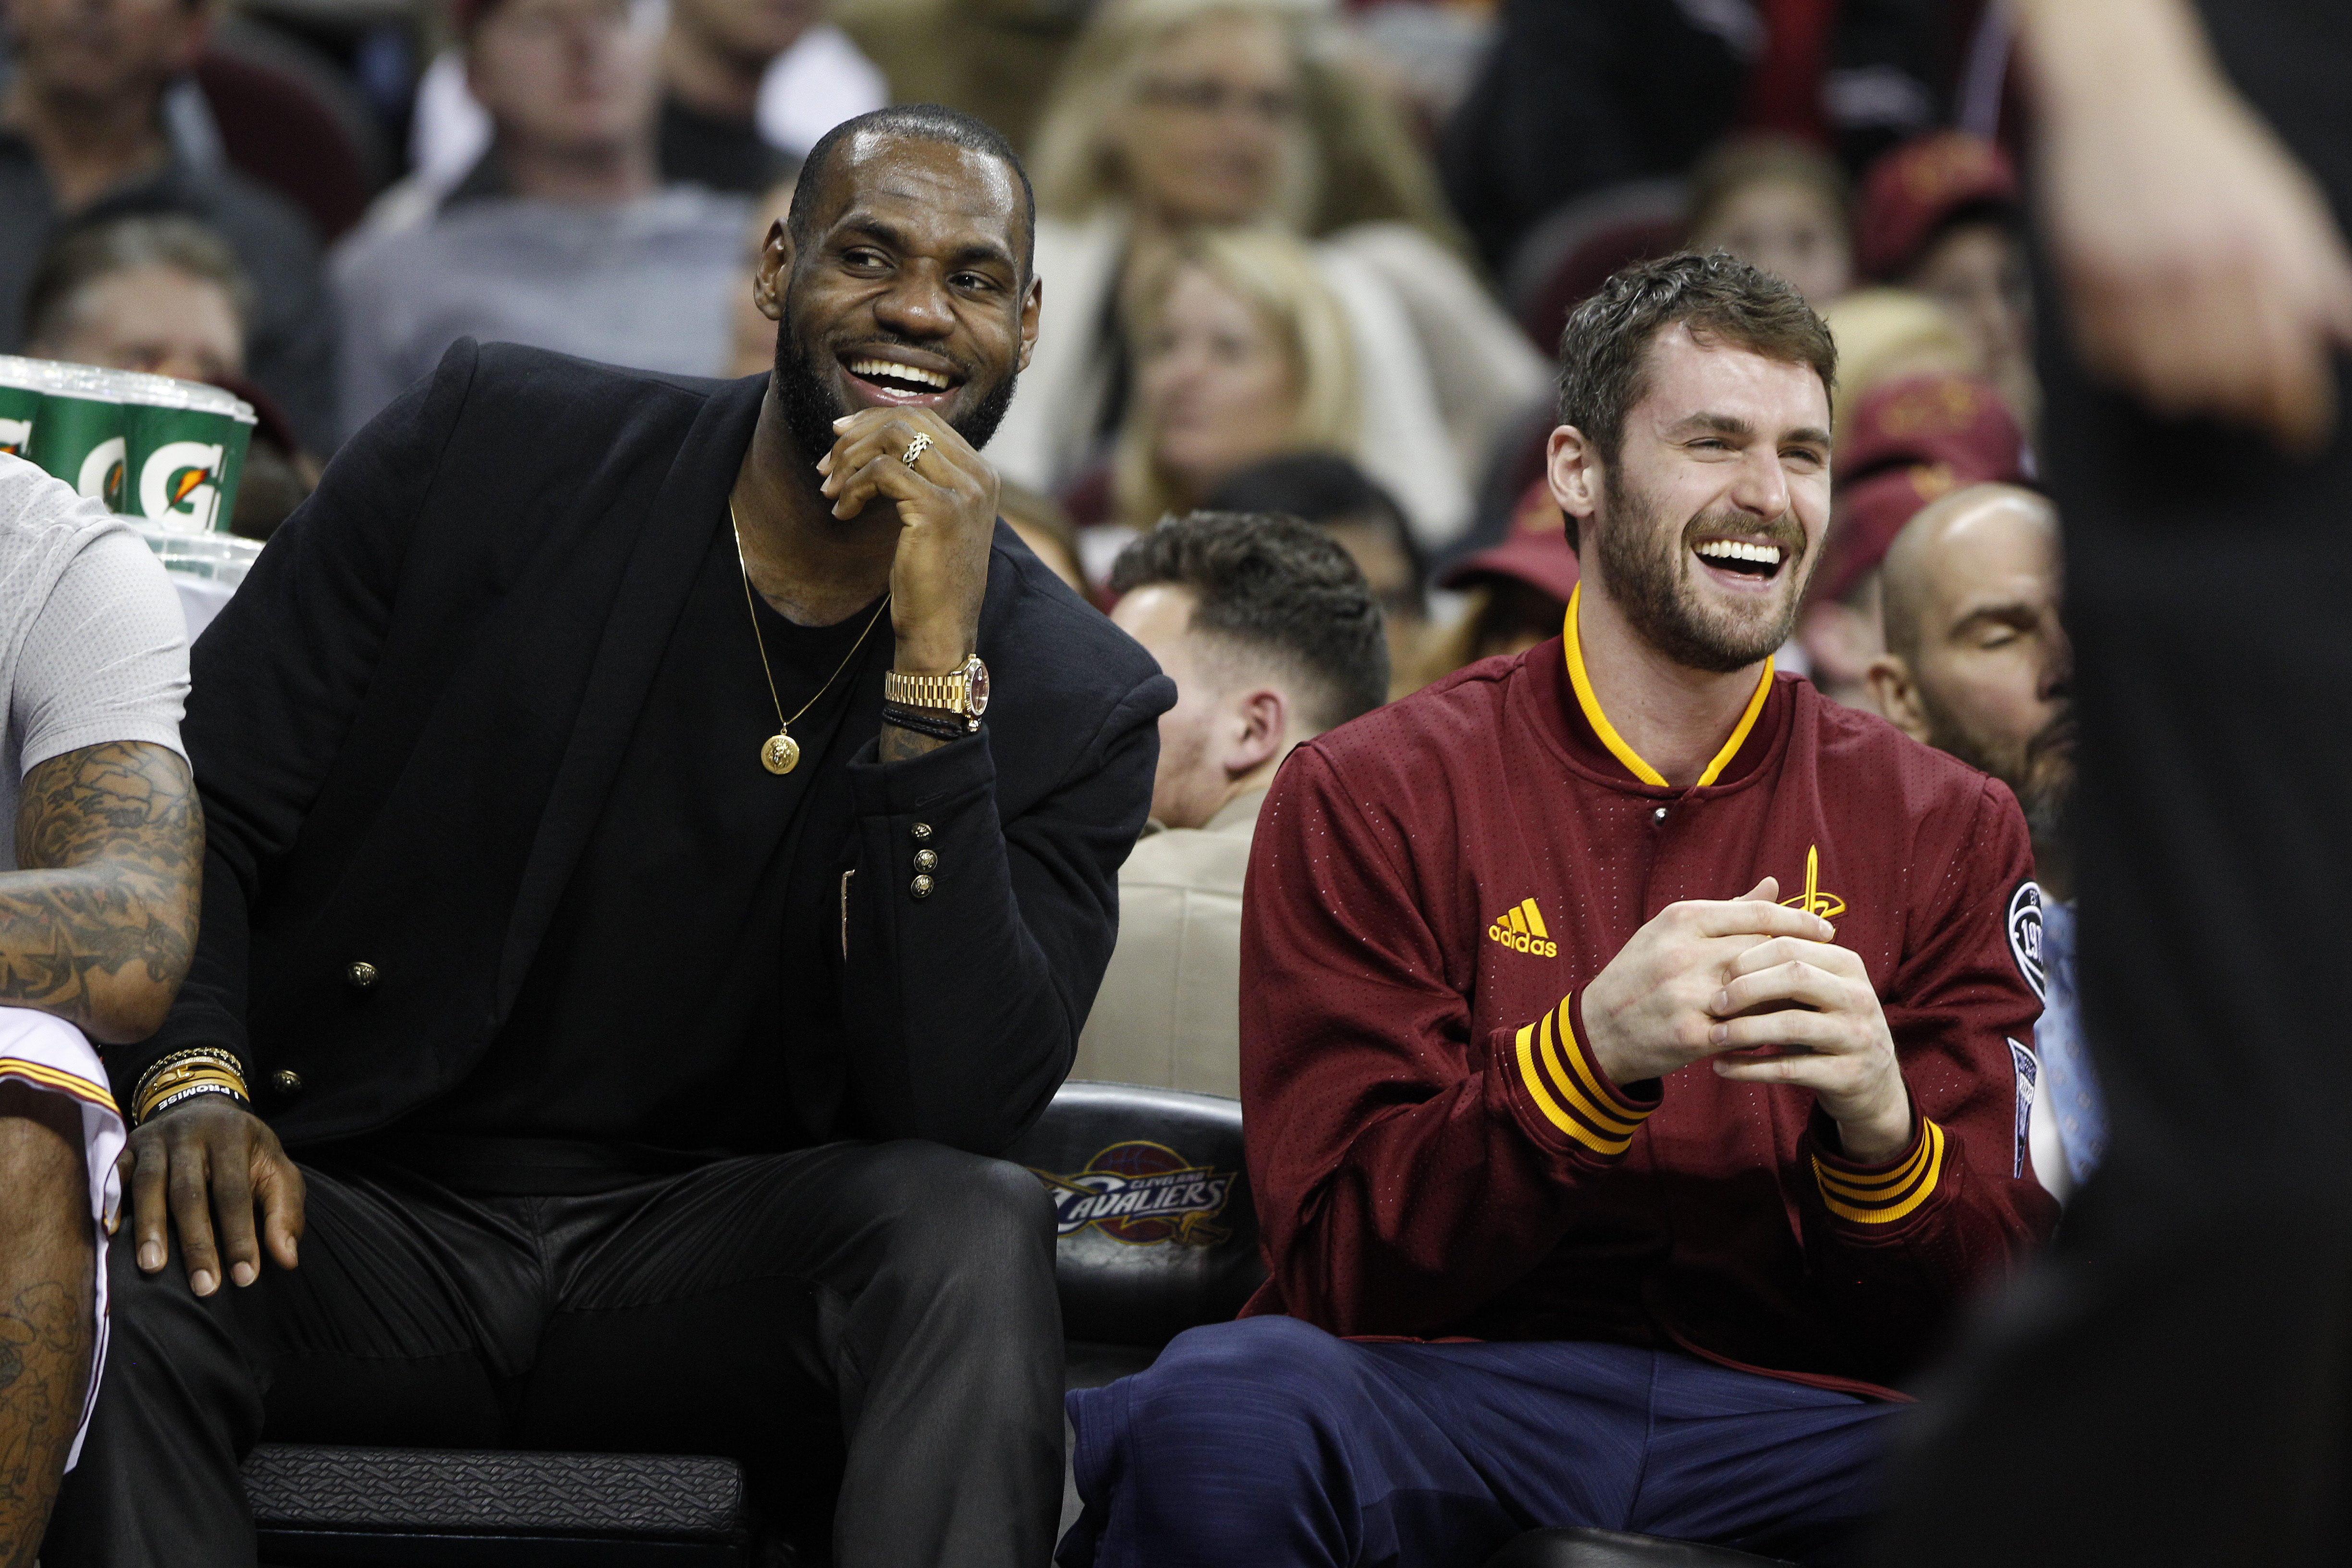 Kevin Love (right) and LeBron James of the Cleveland Cavaliers watch from the bench during a loss to Detroit in April 2016. (Getty Images)